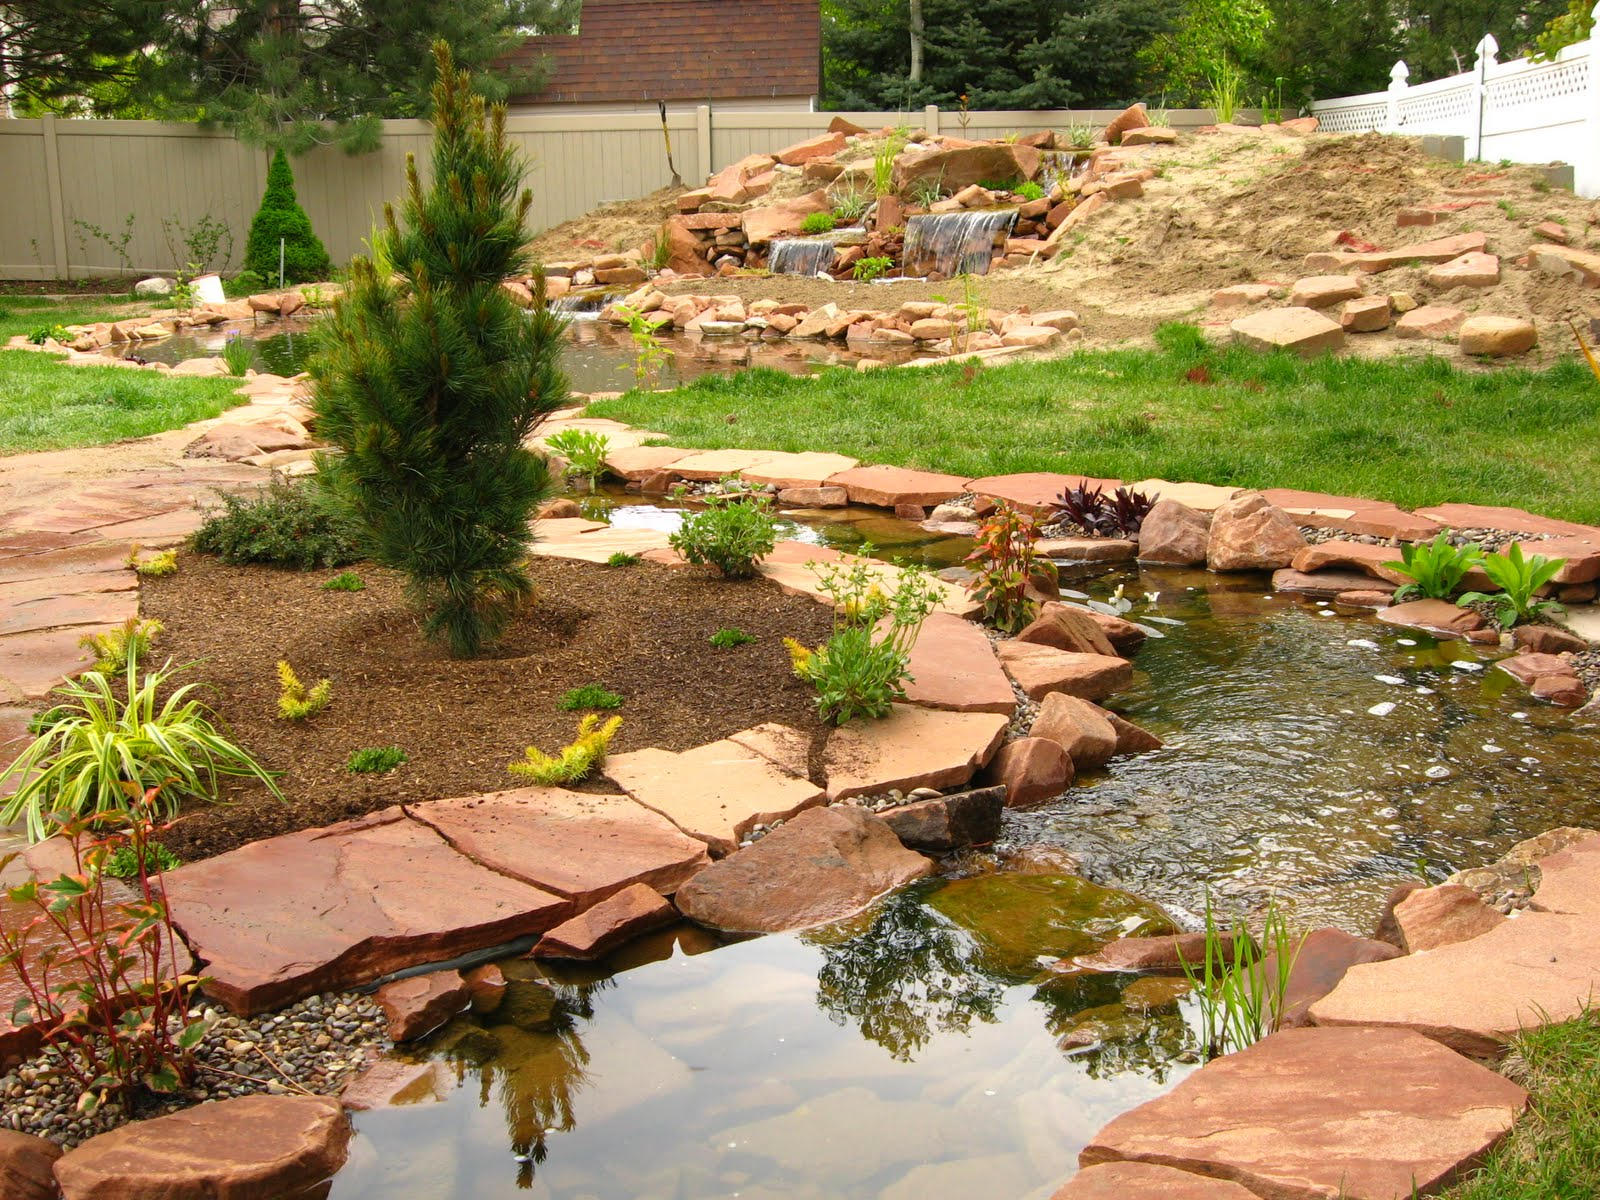 Bon The Trout Pond And Stream Complete But Looking A Bit Naked. Accent Trees  And Shrubs Are Needed Along Side Companion Perennials And Some Hardscaping  Stone ...